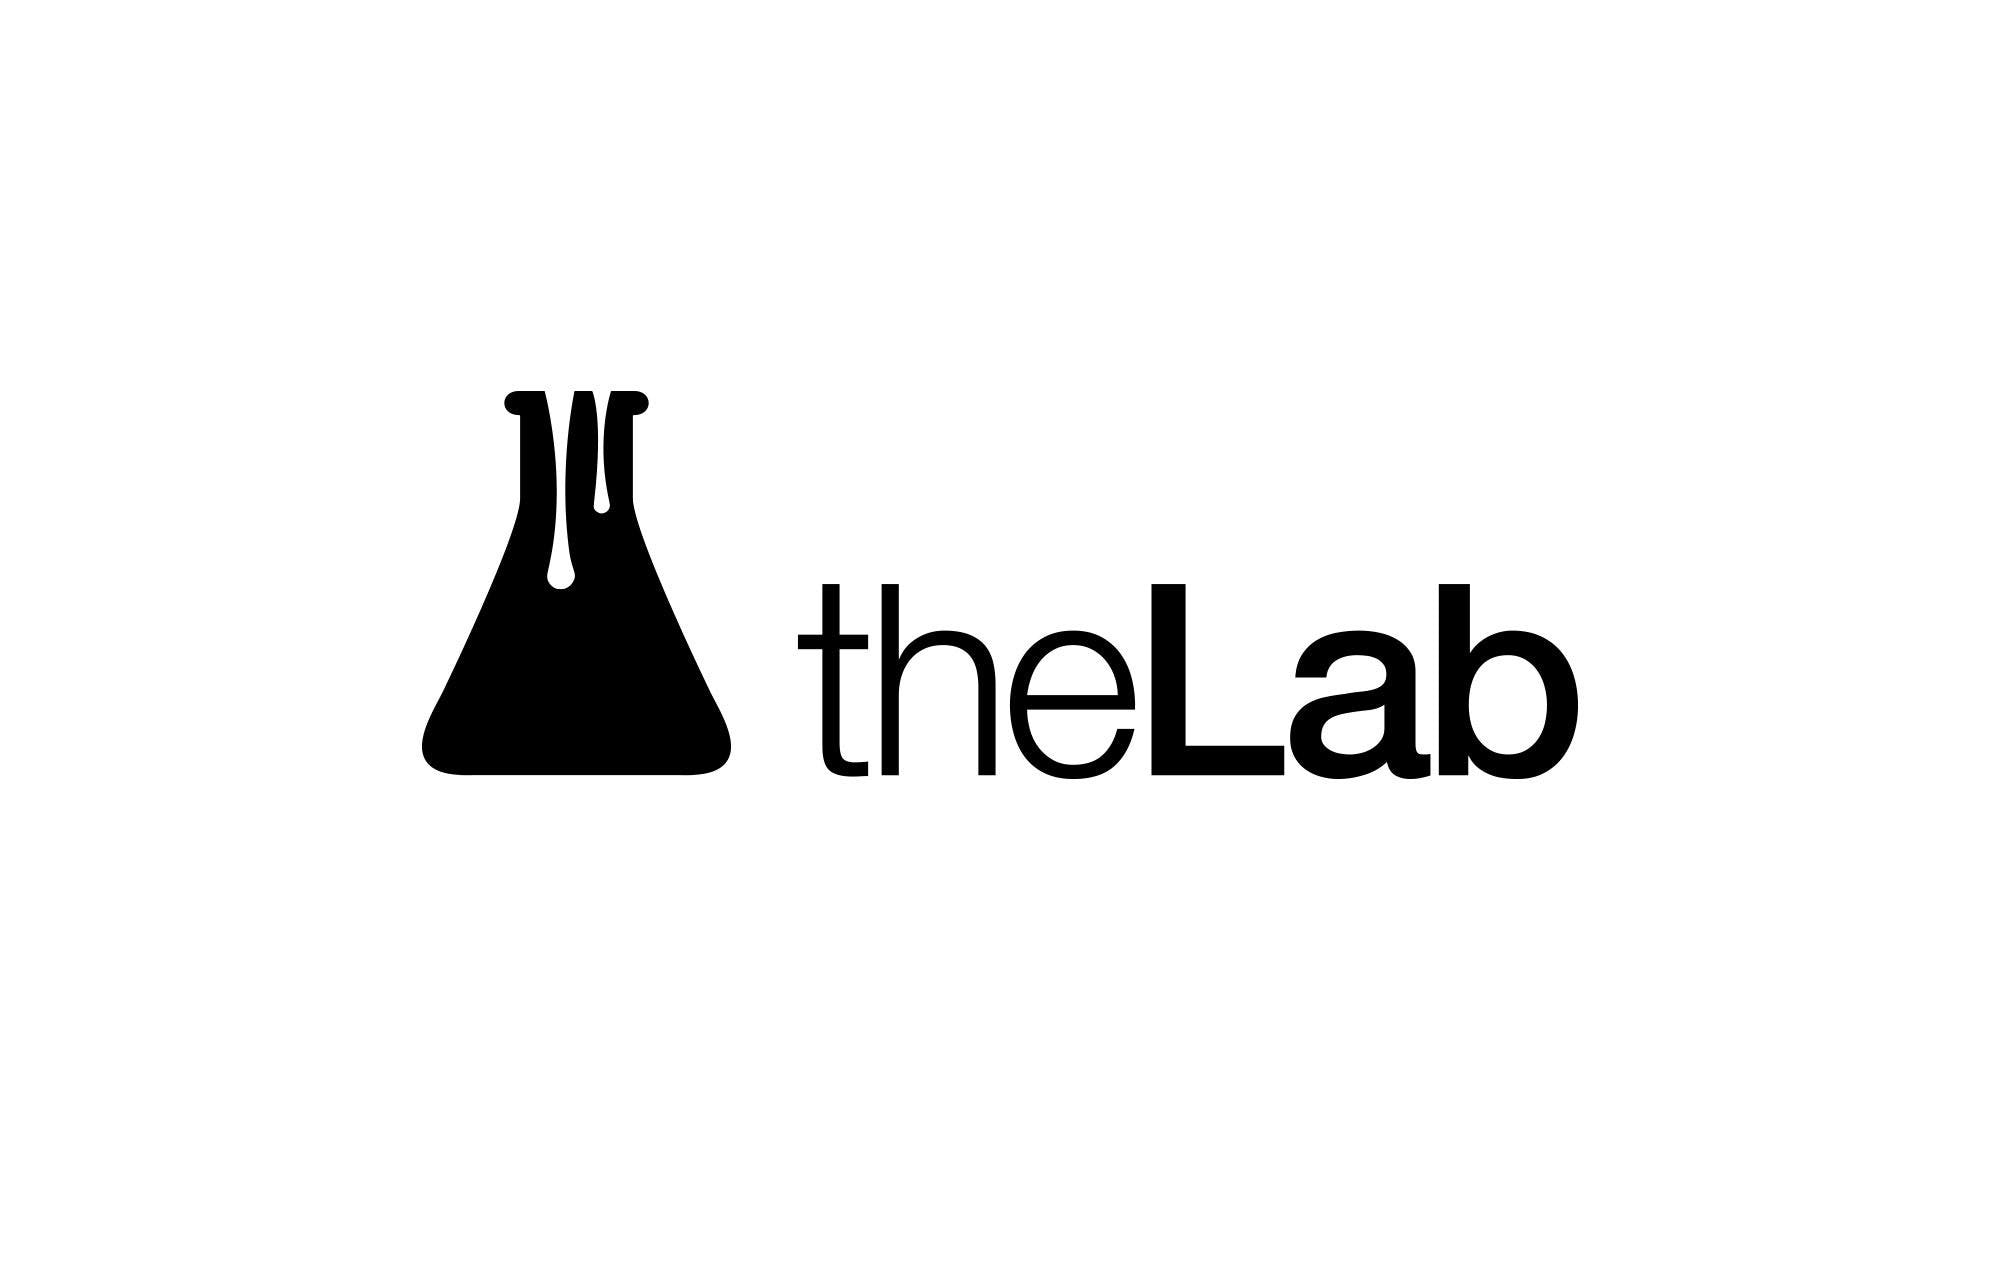 THE LAB - Medical Marijuana Doctors - Cannabizme.com